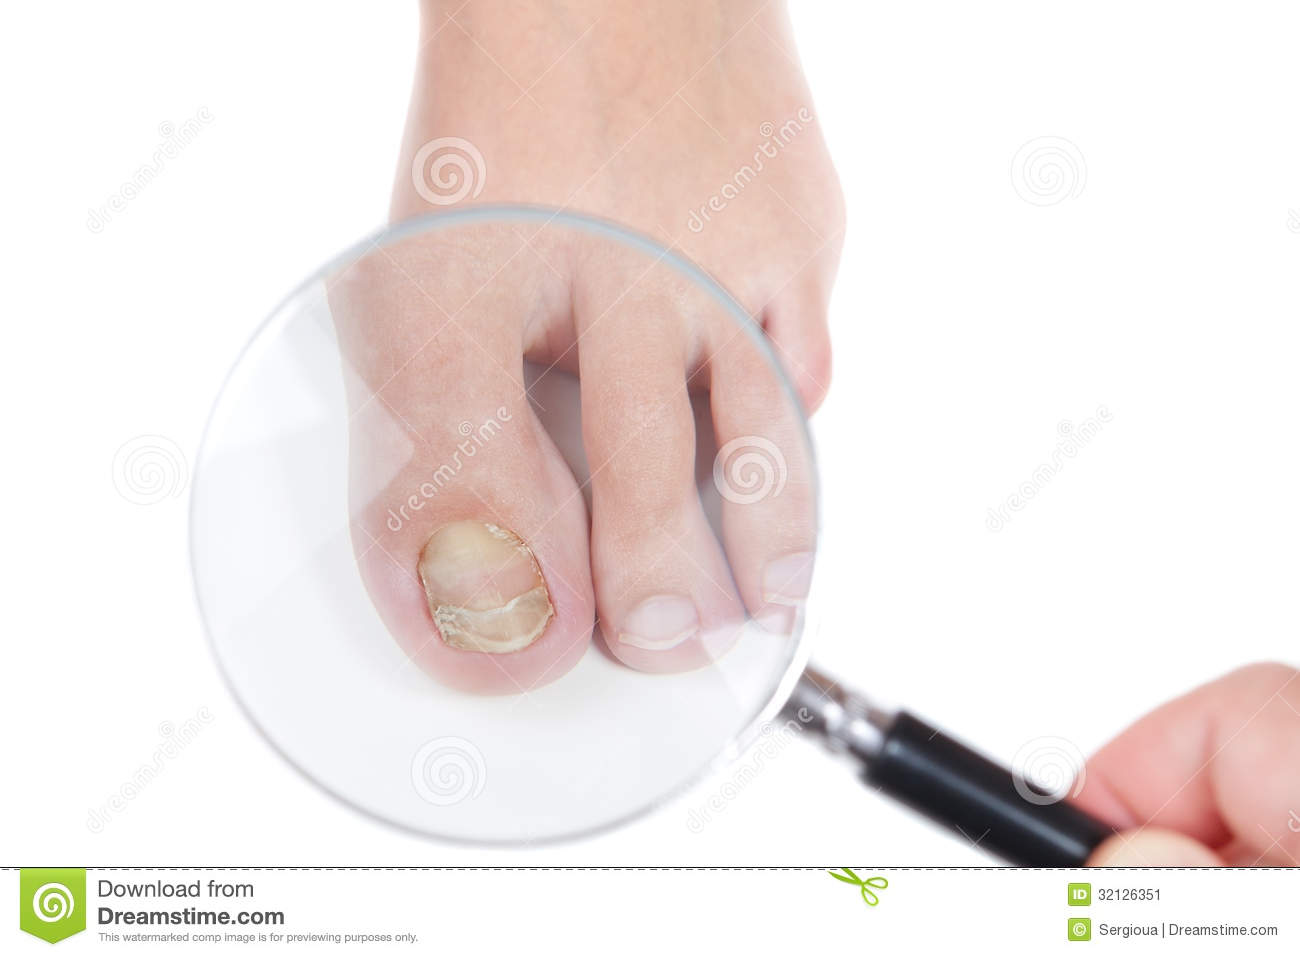 Dermatologist Examines The Nail On The Presence Of The Eczema. Stock ...